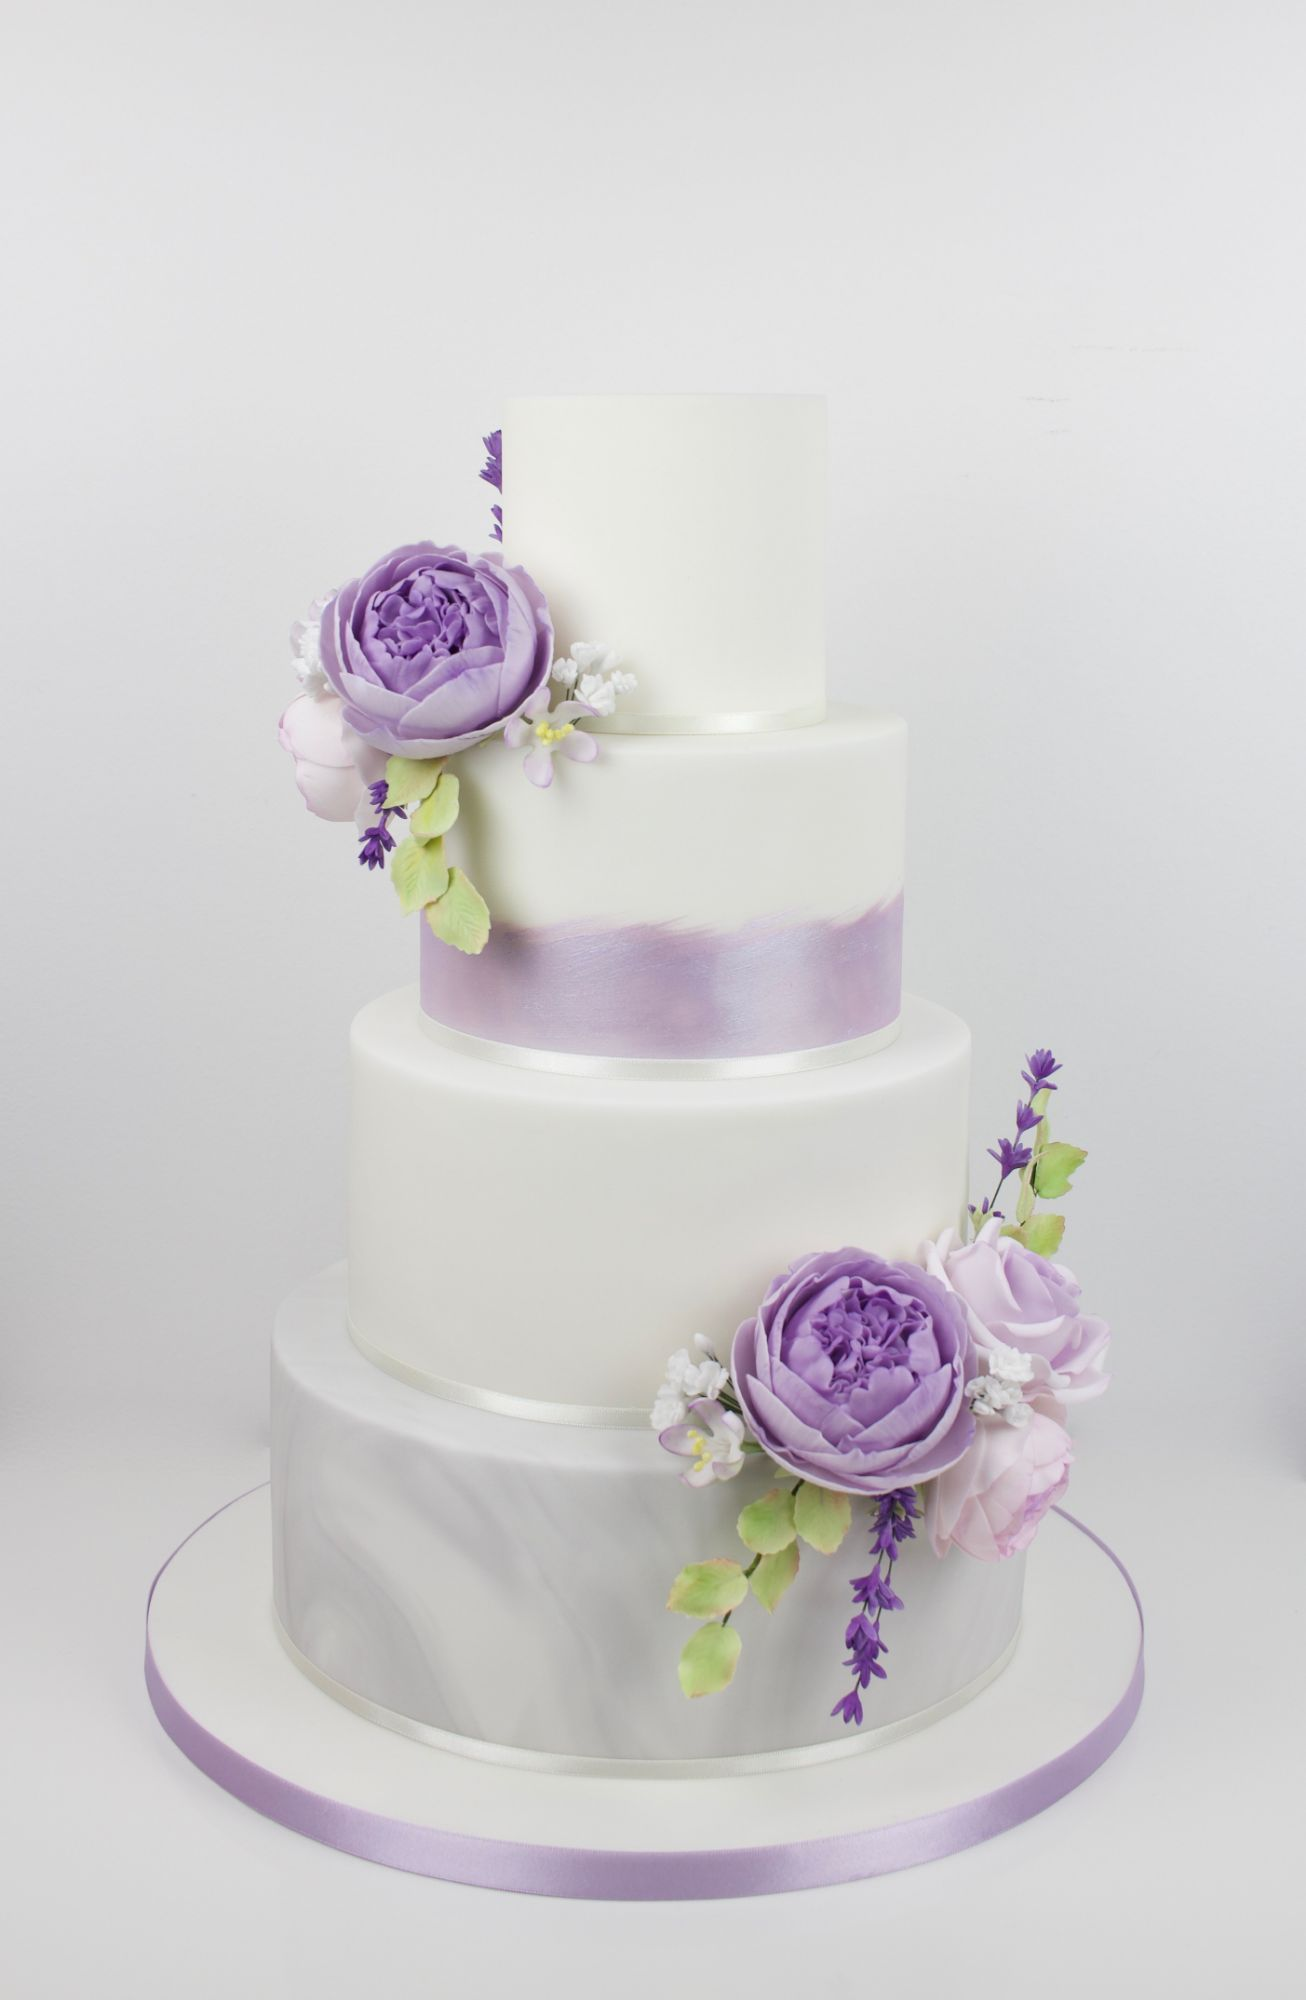 Lurstered purple wedding cake with sugar peonies and a marble tier.